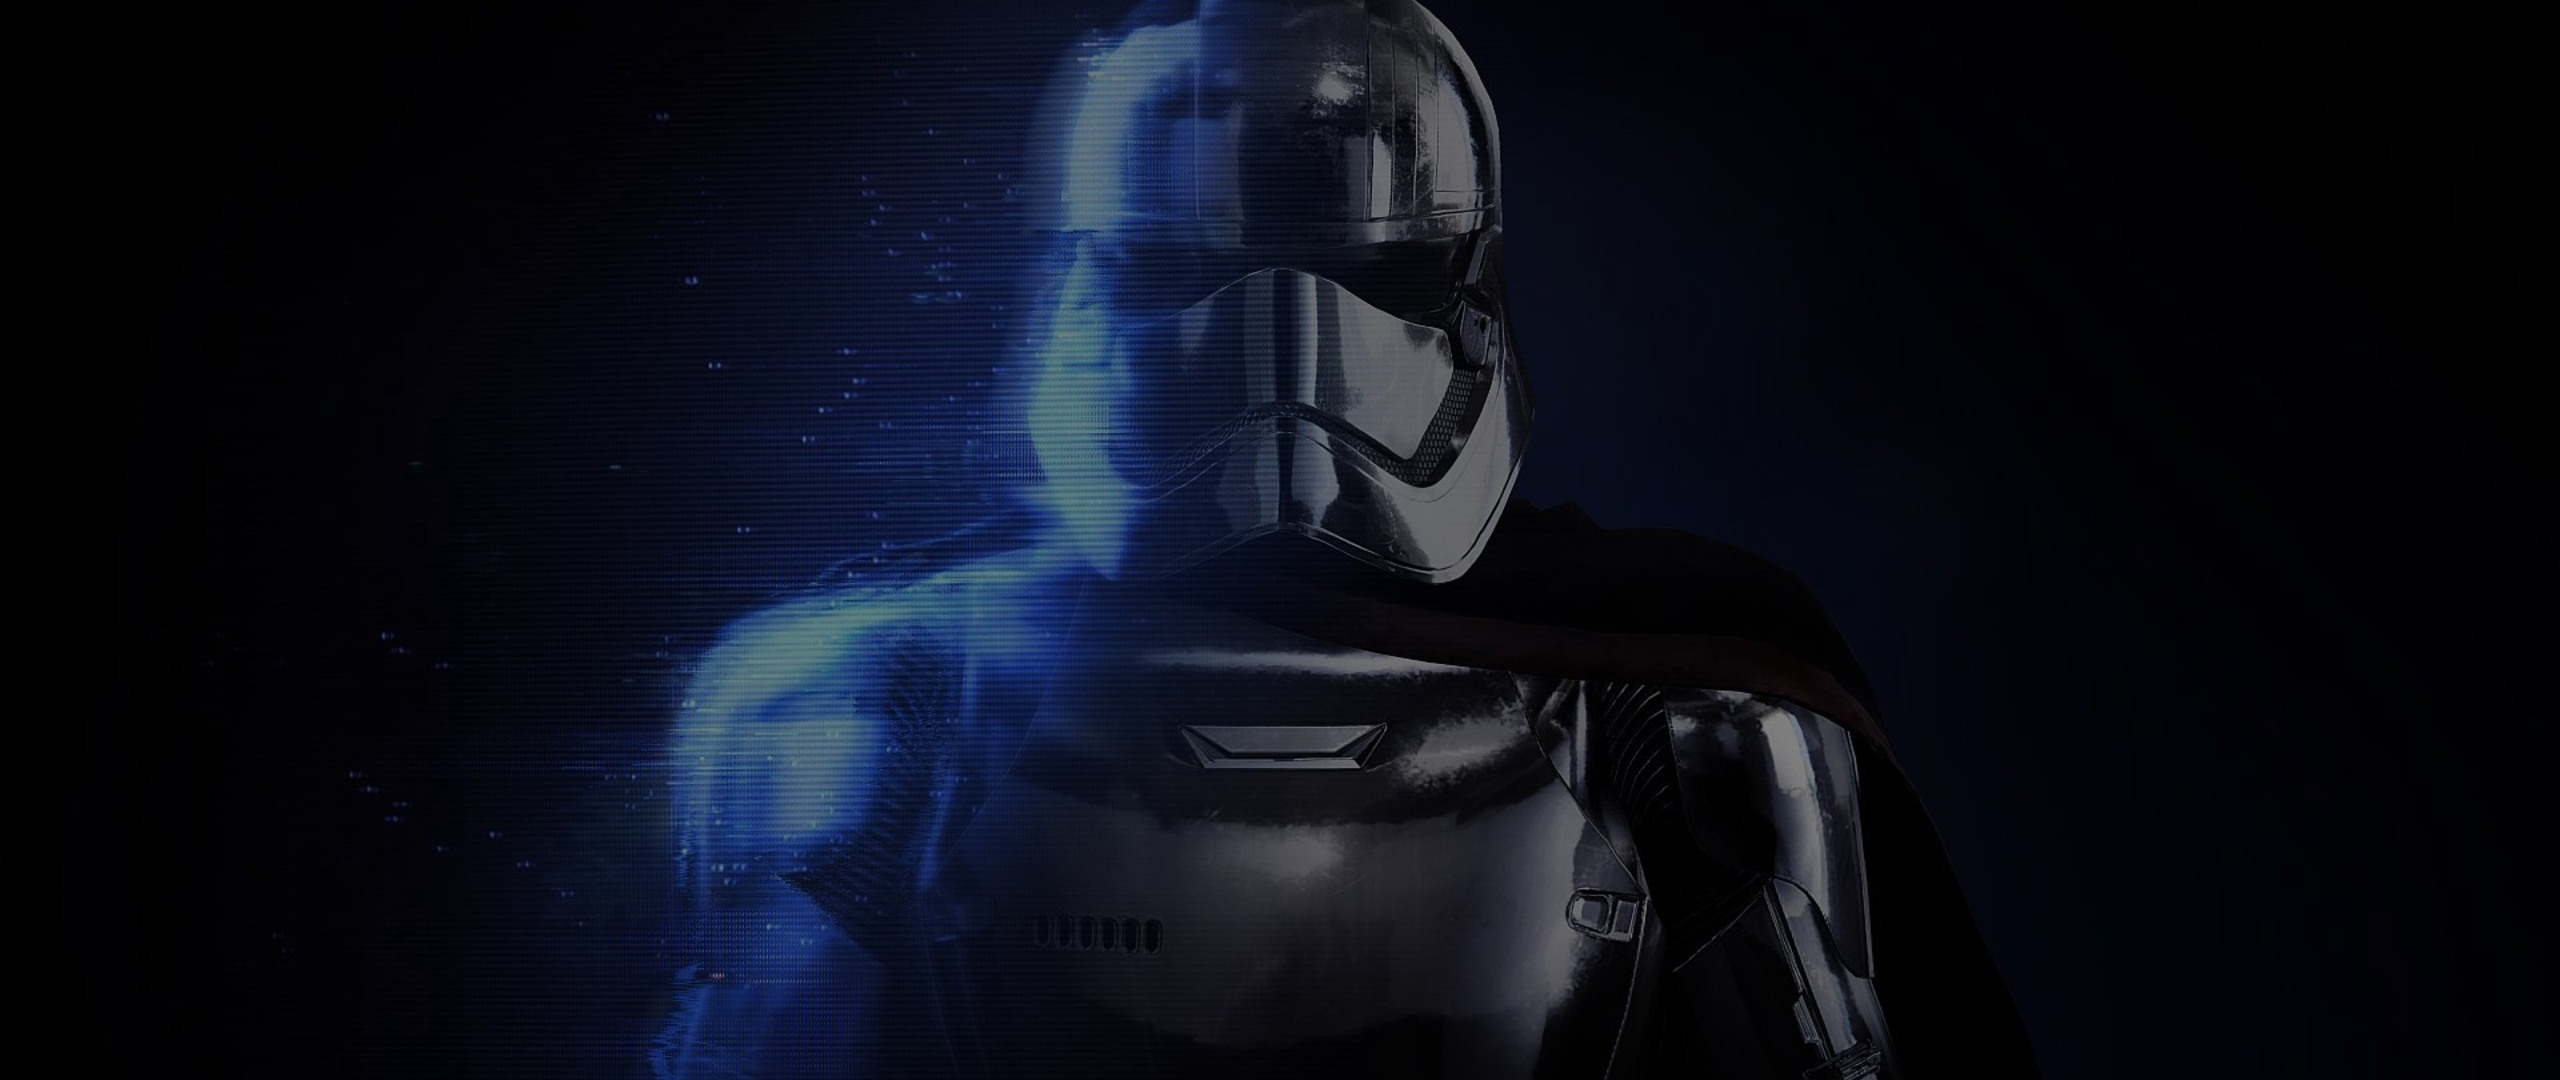 STAR WARS BATTLEFRONT sci-fi 1swbattlefront action fighting futuristic  shooter wallpaper | 2560x1080 | 931354 | WallpaperUP